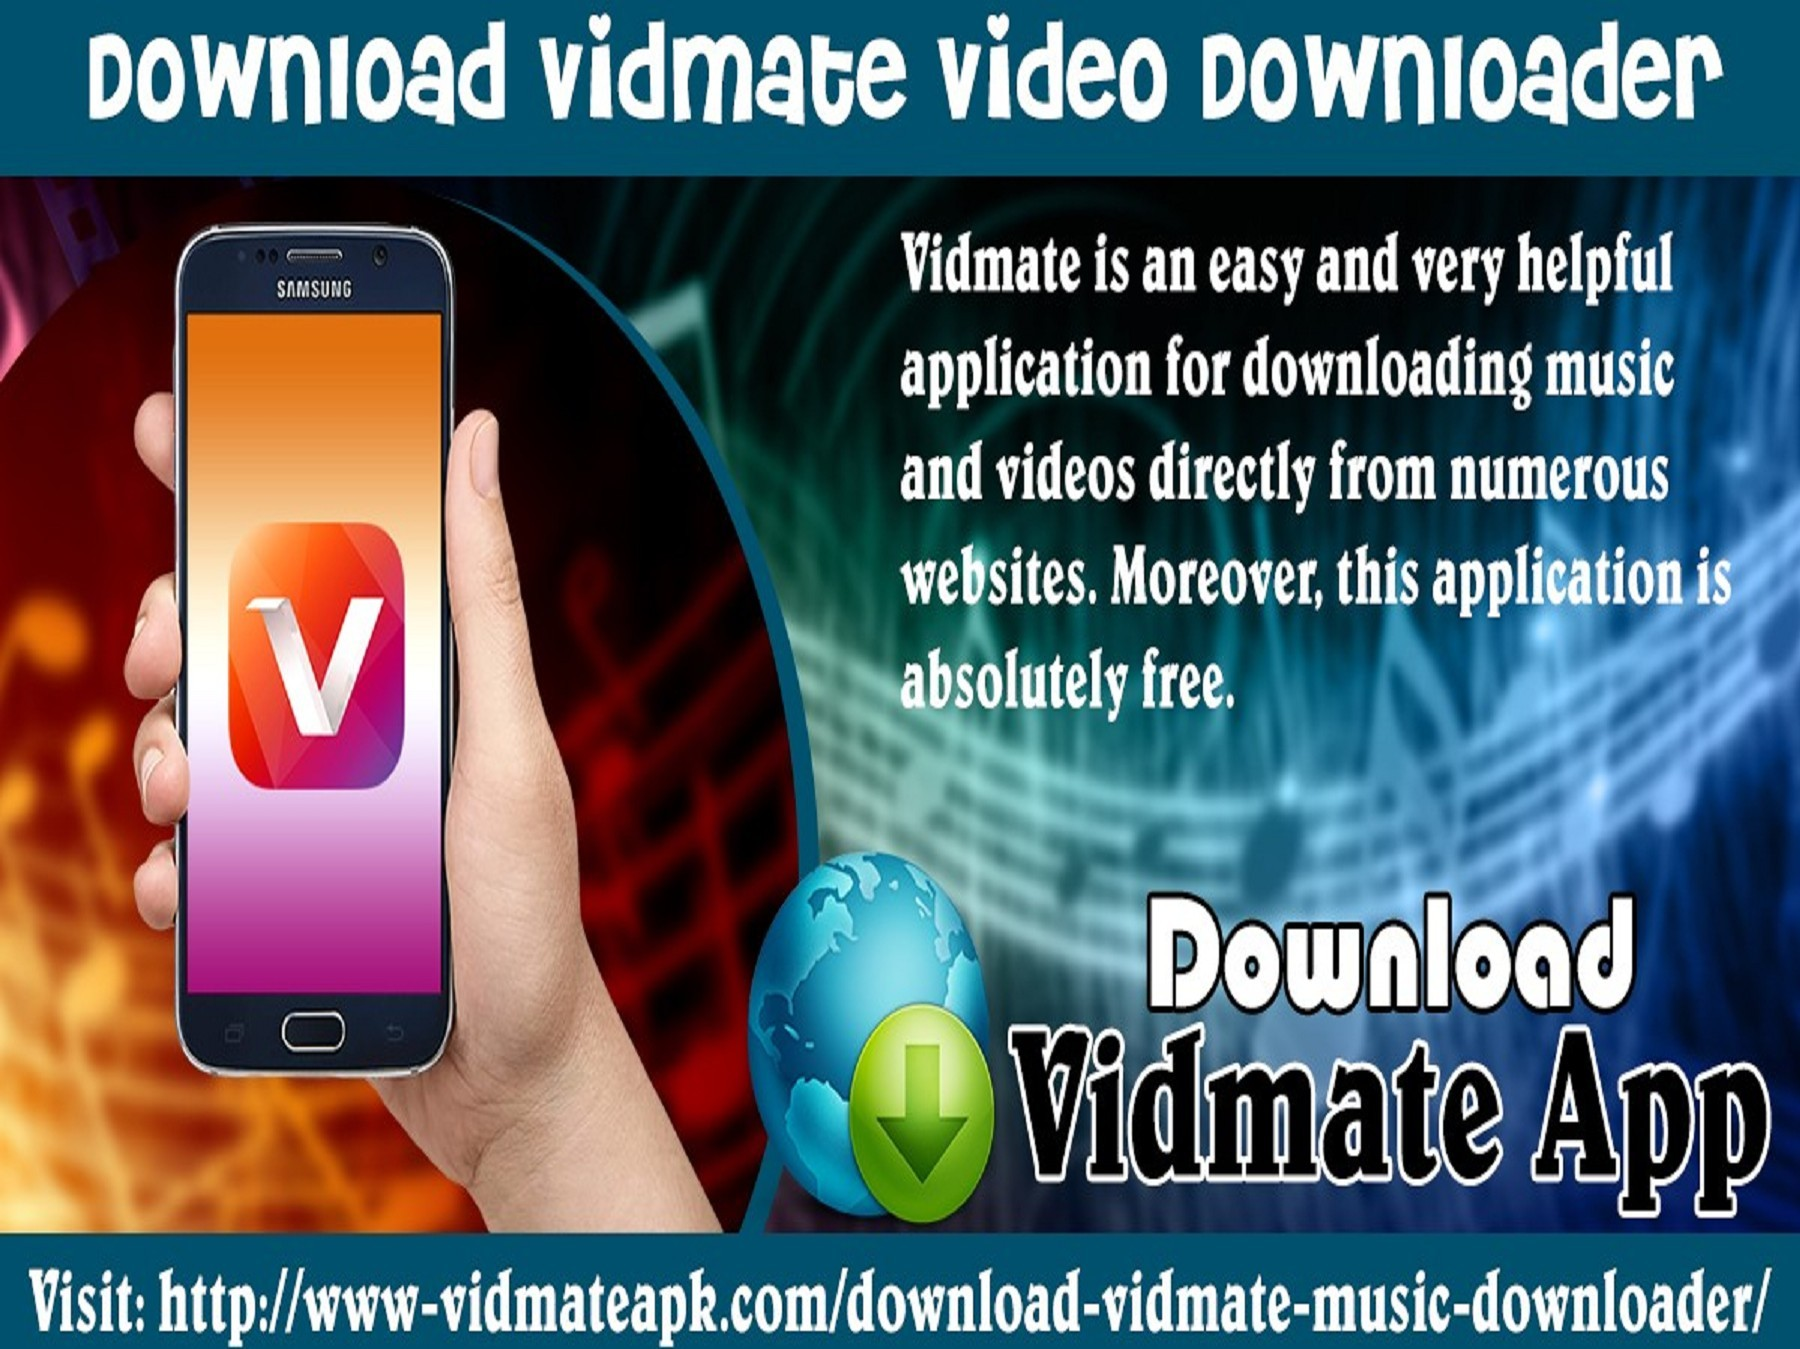 Download Vidmate Video Downloader | PubHTML5